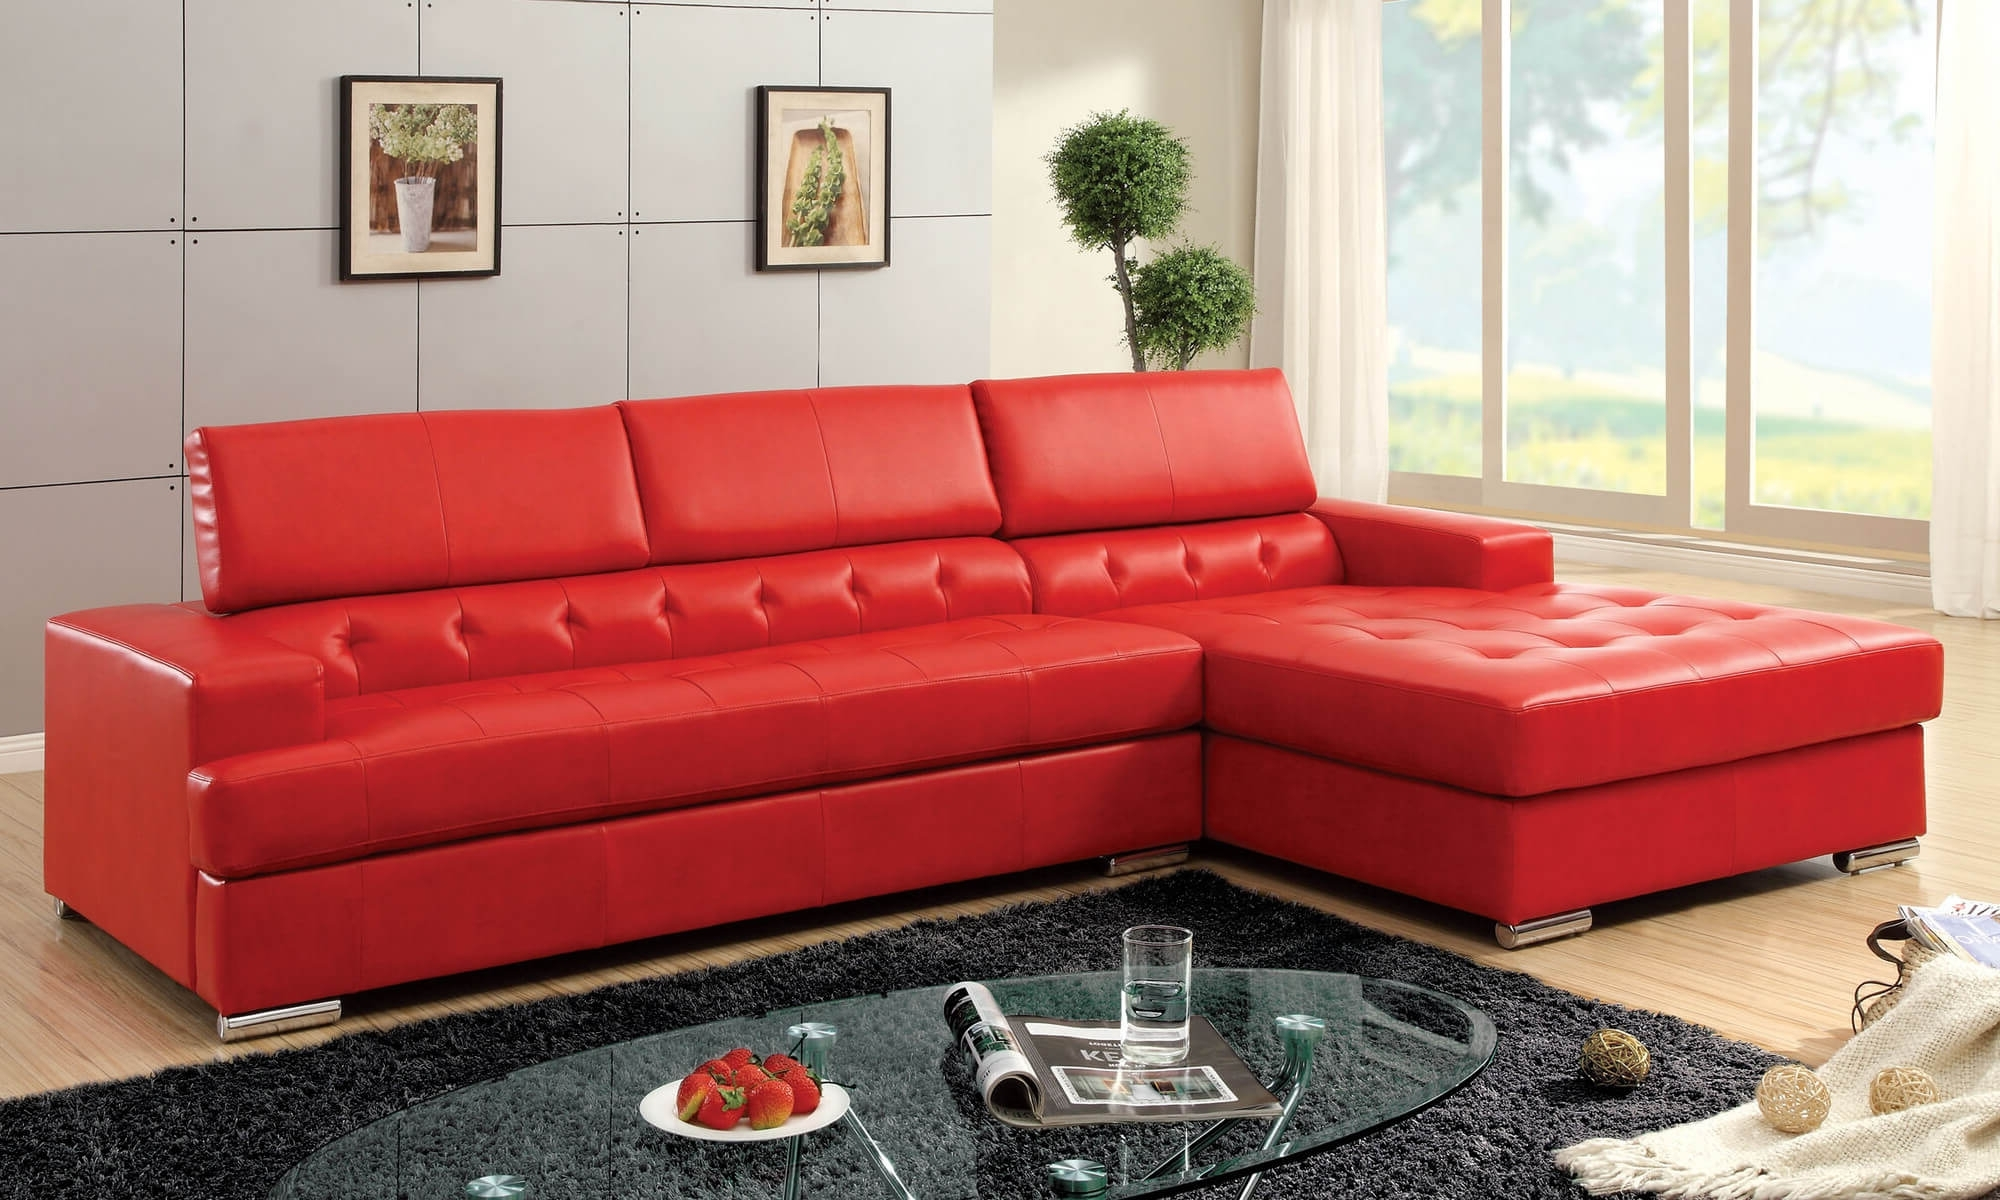 Newest Sectional Sofa Design: Wonderful Red Sectional Sofa With Chaise Within Red Leather Sectionals With Ottoman (View 14 of 15)